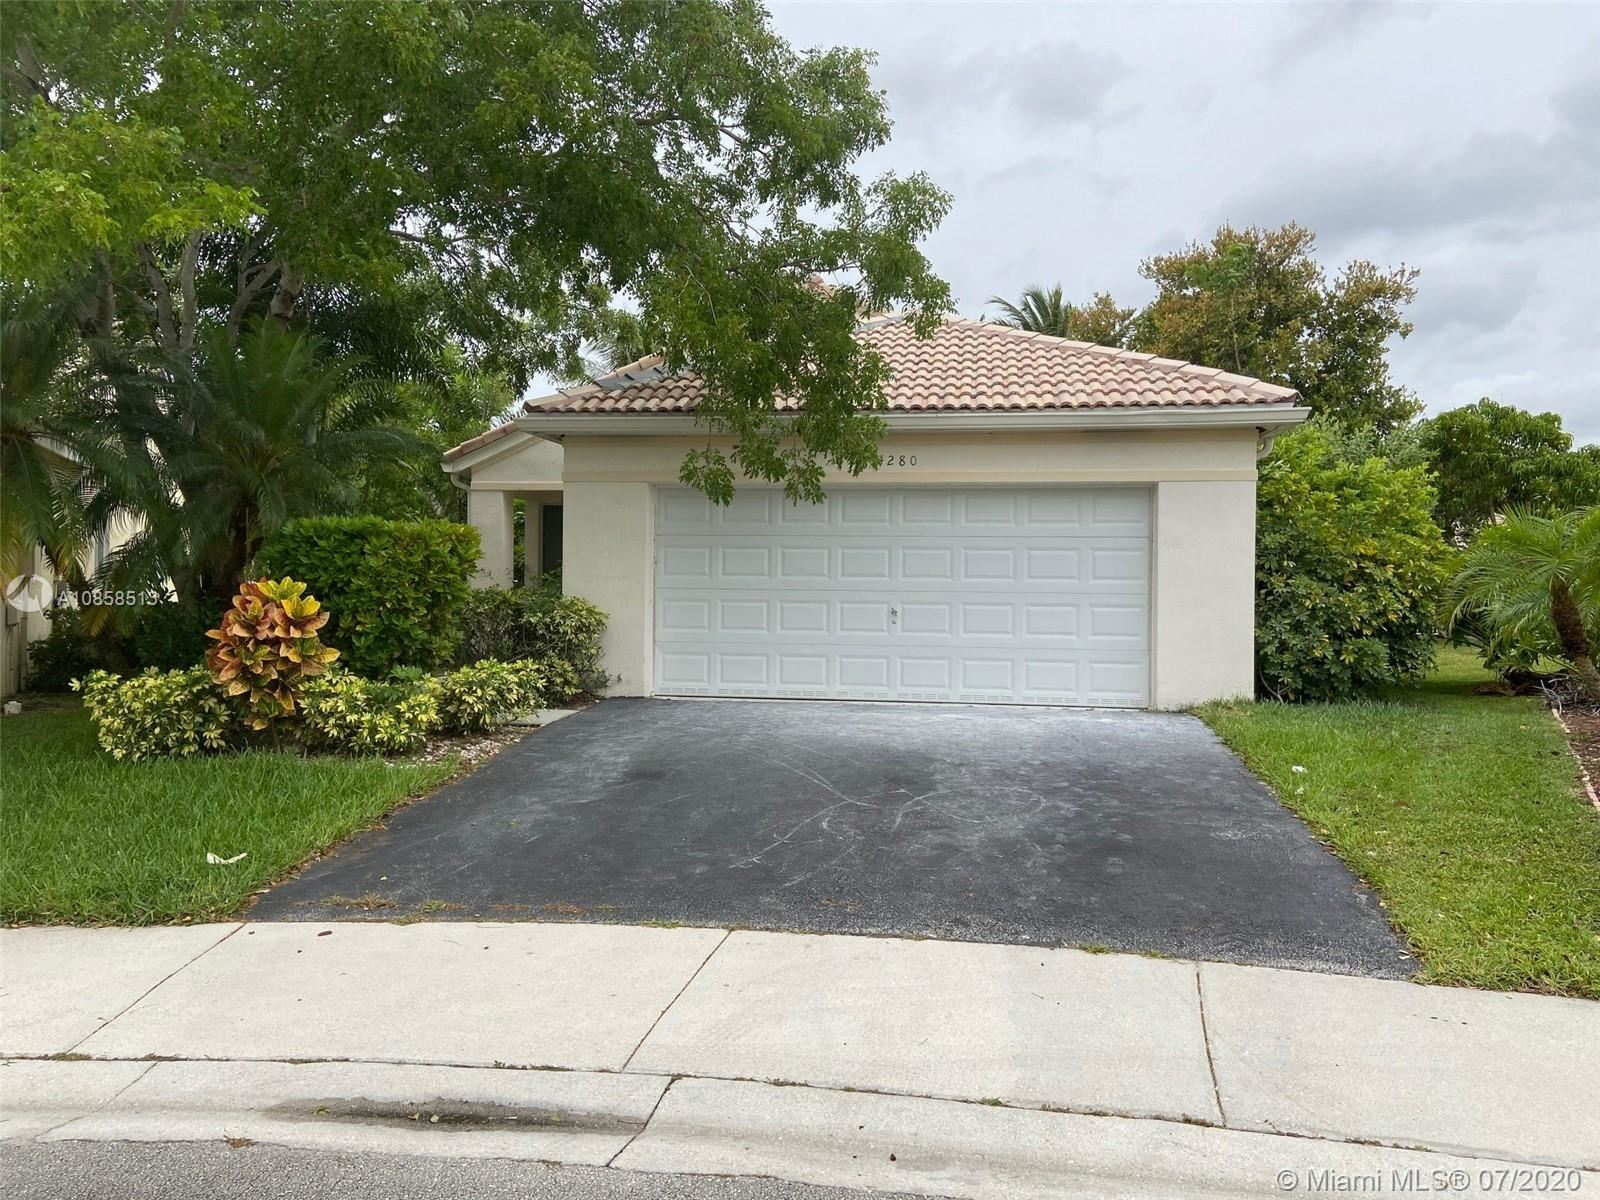 4280 Ironwood Ct, Weston, FL 33331 - #: A10858513